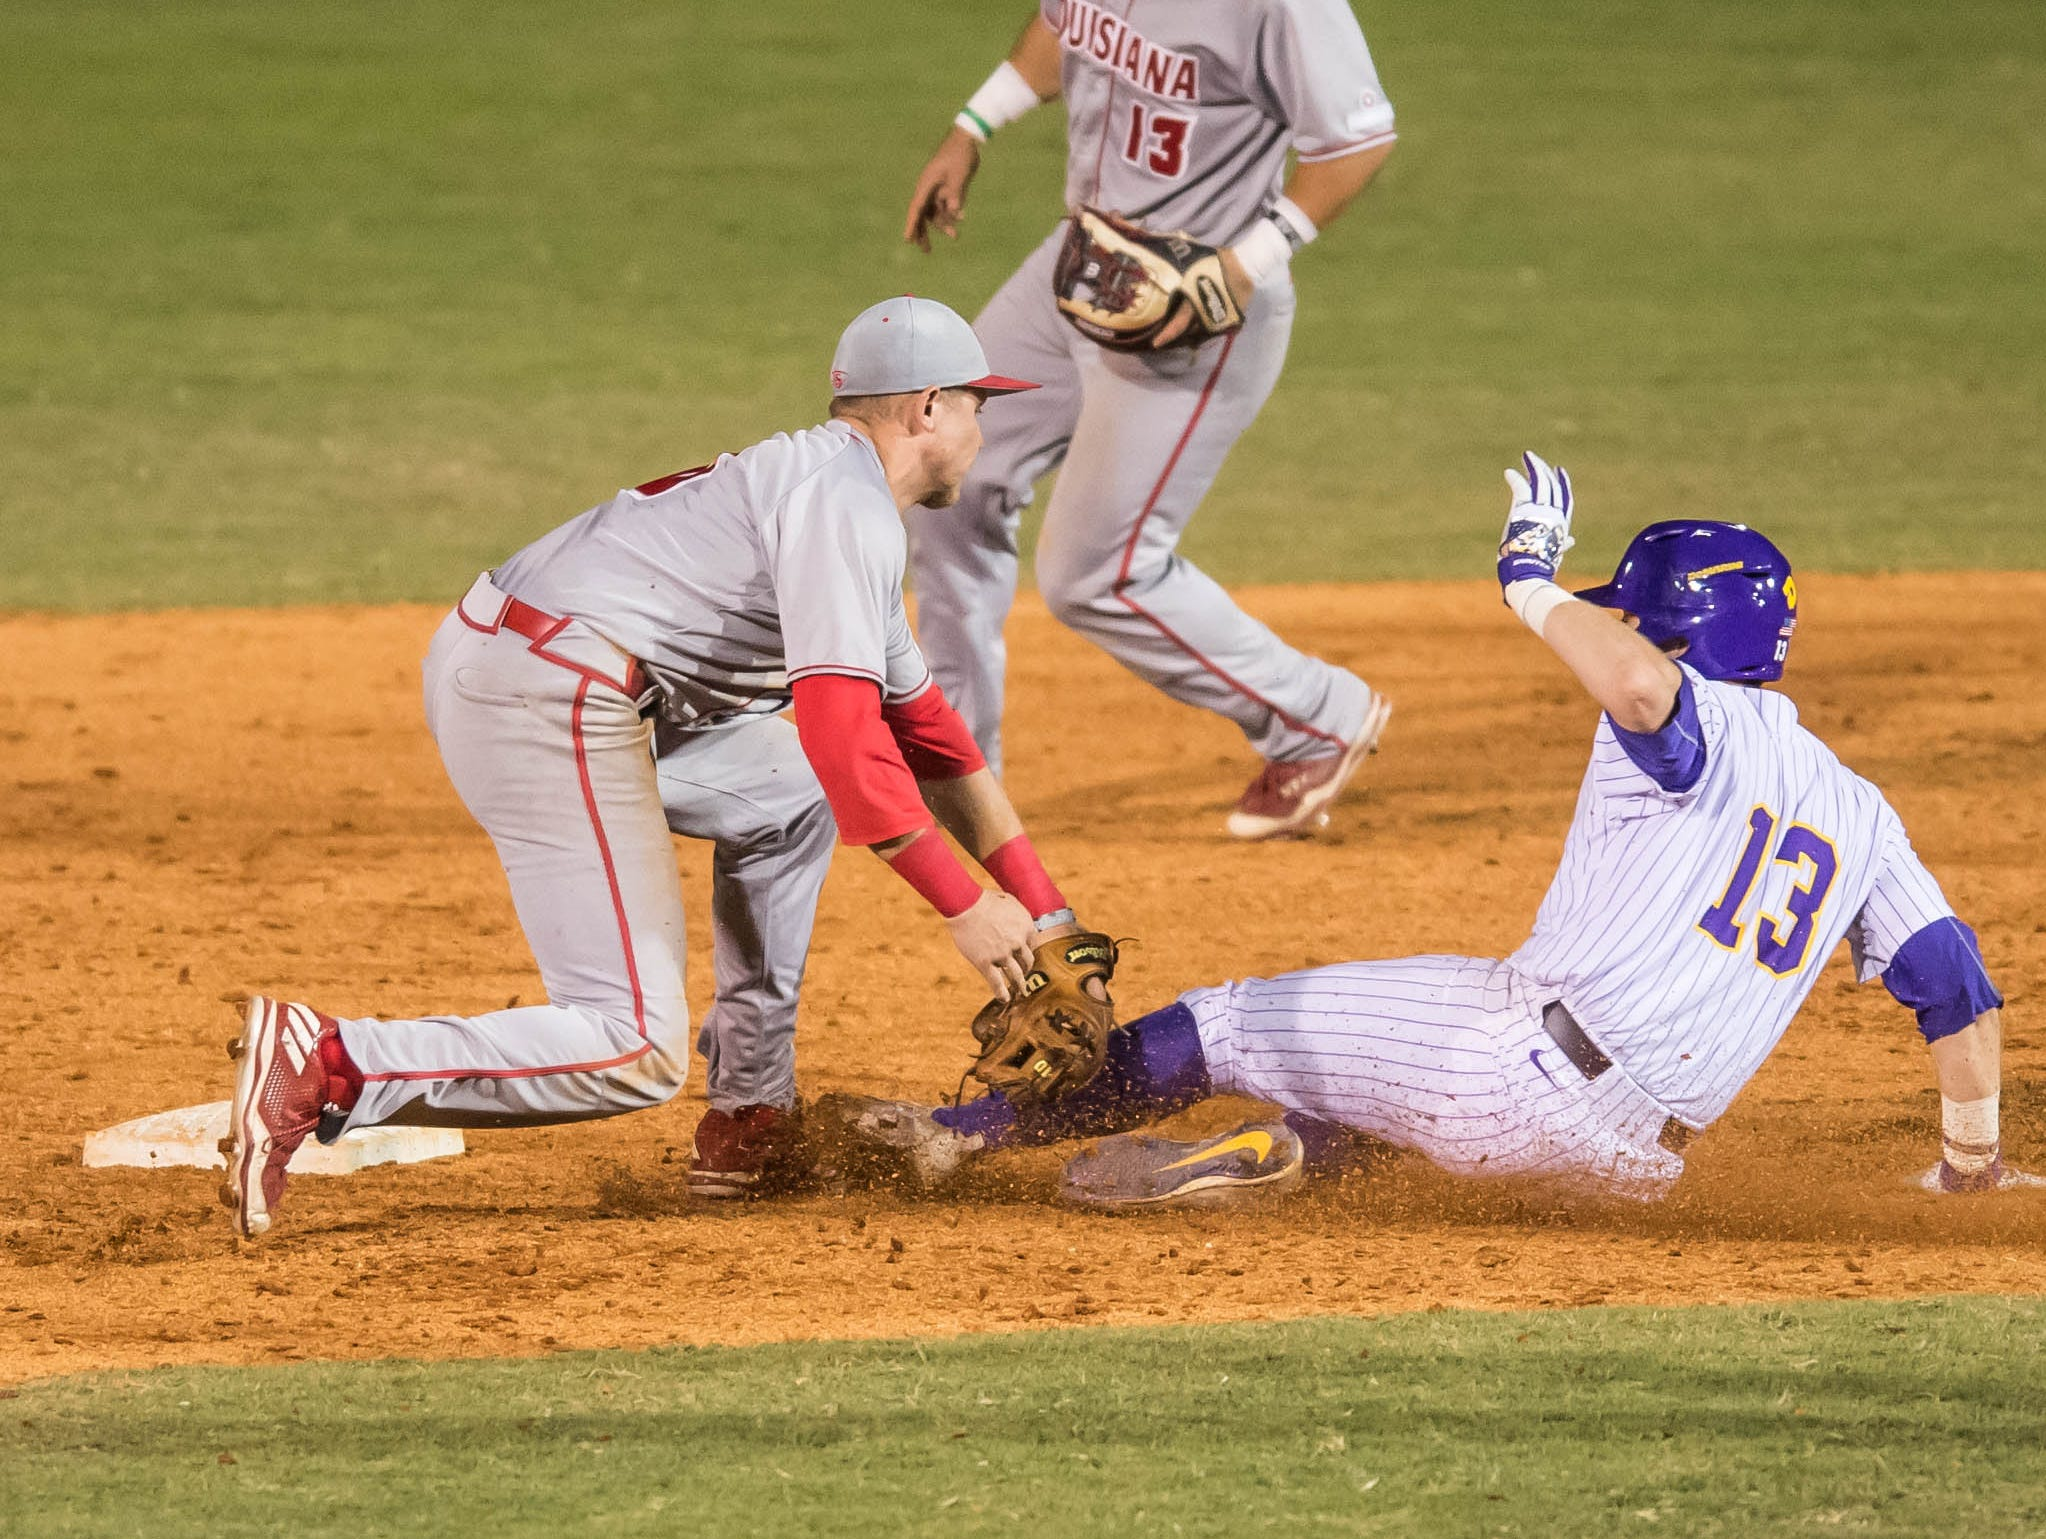 Cajuns infielder Brad Antchak (10) puts the tag on LSU catcher Nick Coomes (13) for the out in the annual Wally Pontiff classic at Zephyr Field on Tuesday night on April 11, 2017.